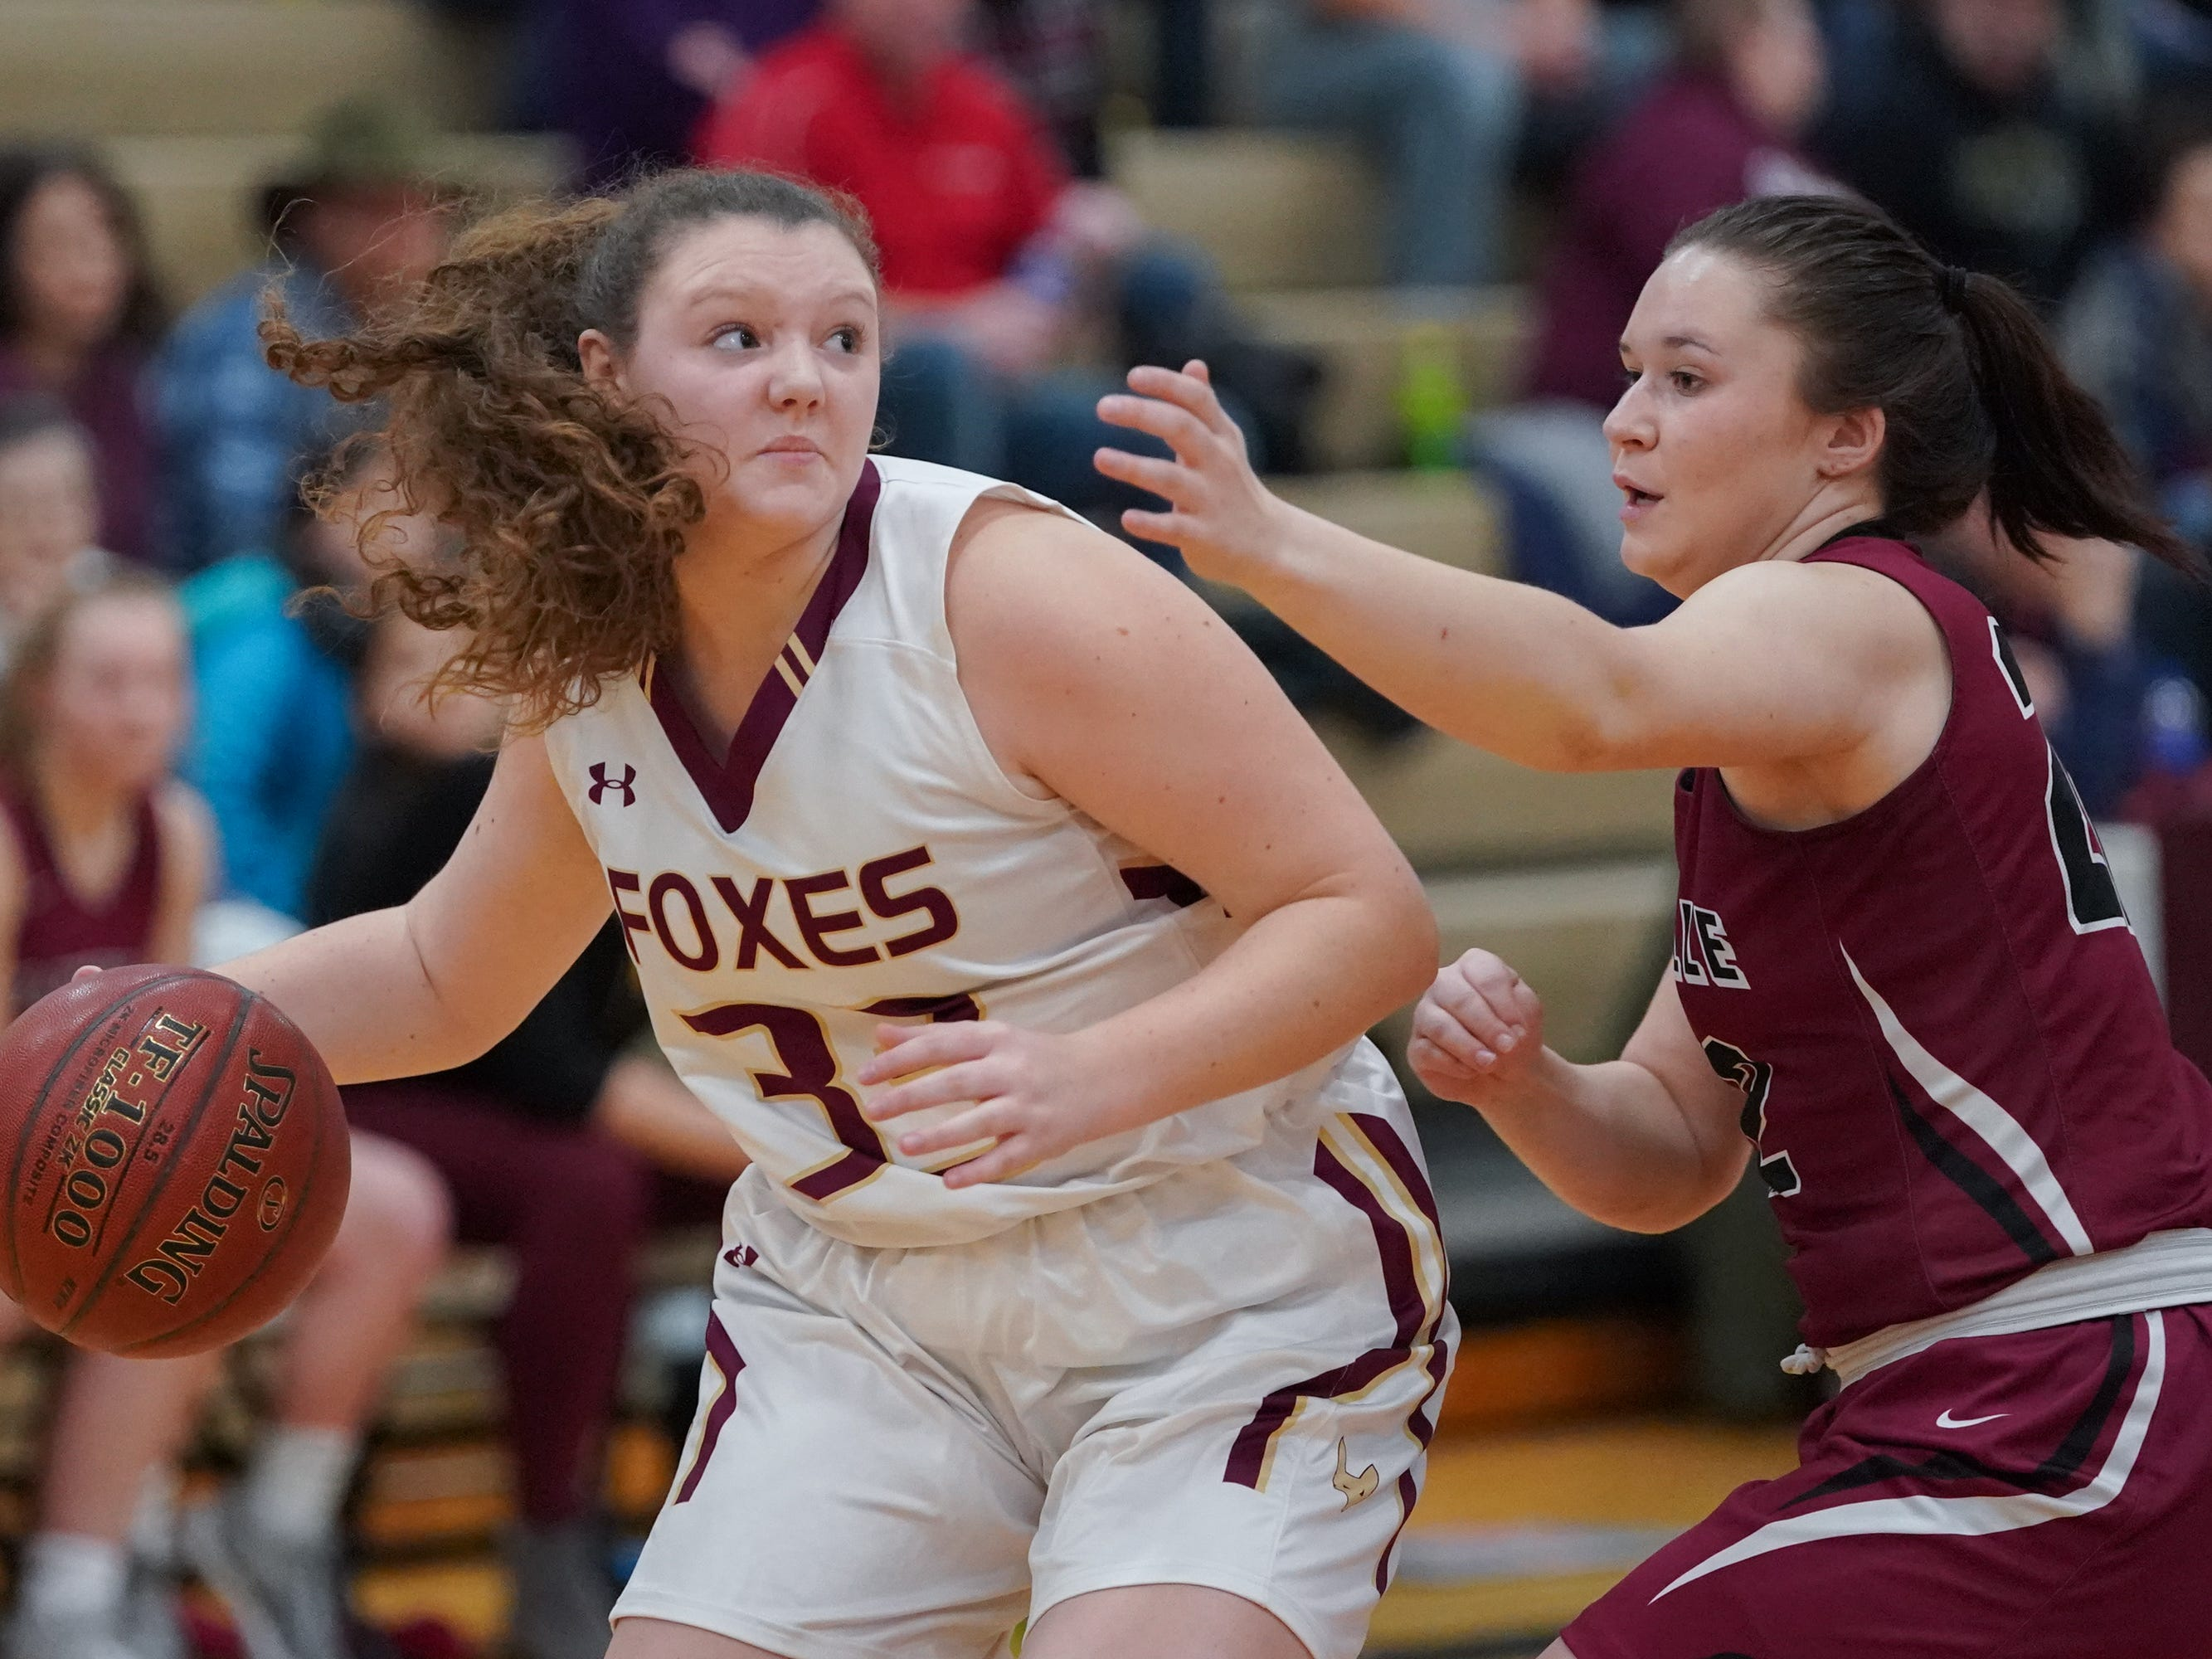 Autumn Davis (33) of Omro drives around Reannah Zimmer (22) of Mayville. The Omro Foxes hosted the Mayville Cardinals in a Flyway Conference basketball game Friday evening, January 4, 2019.